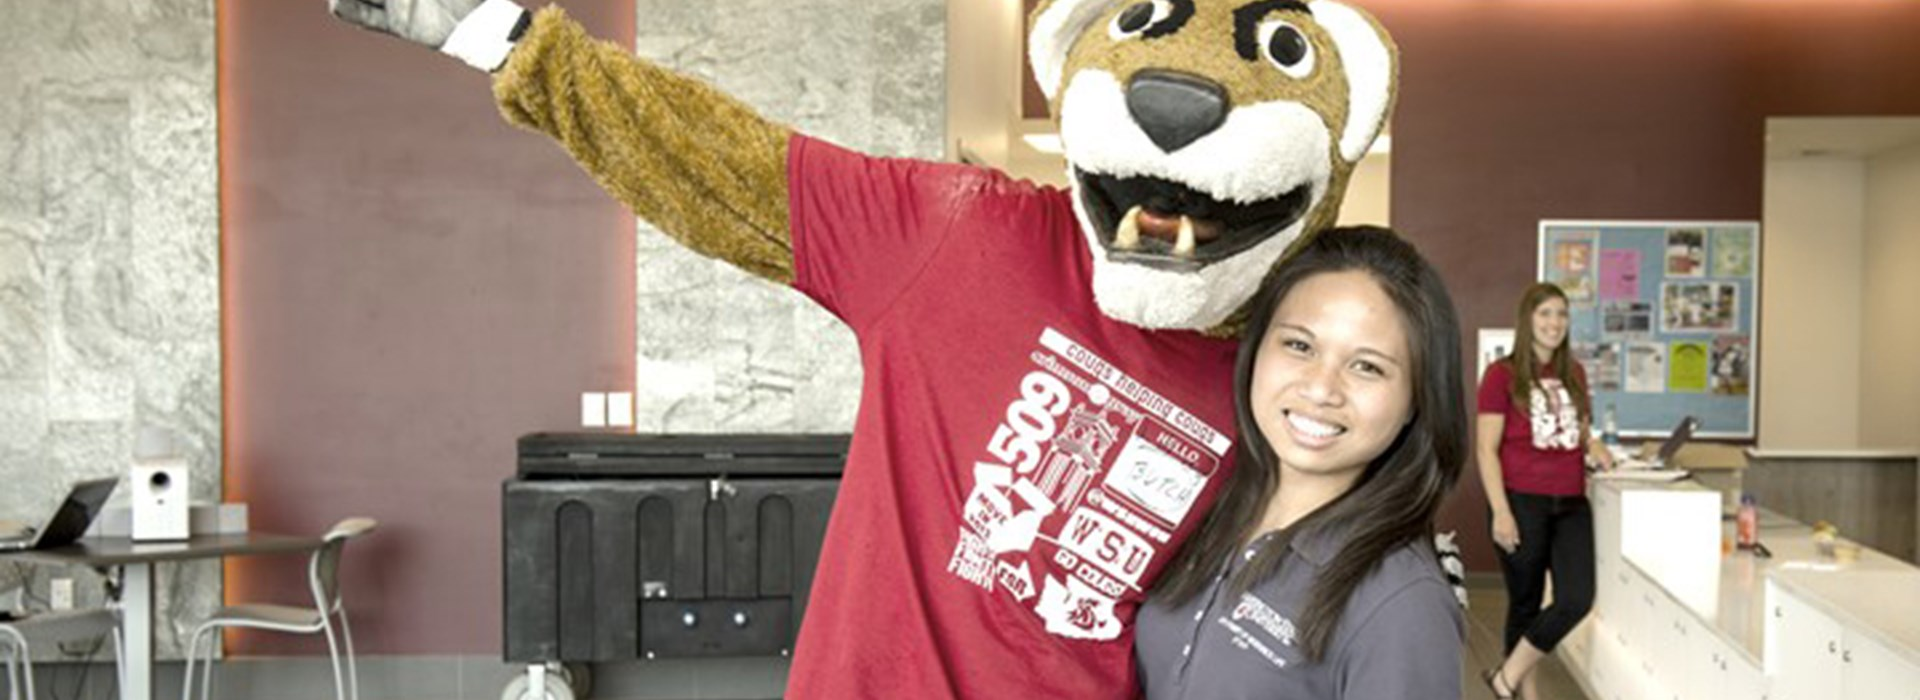 Butch Cougar with Student